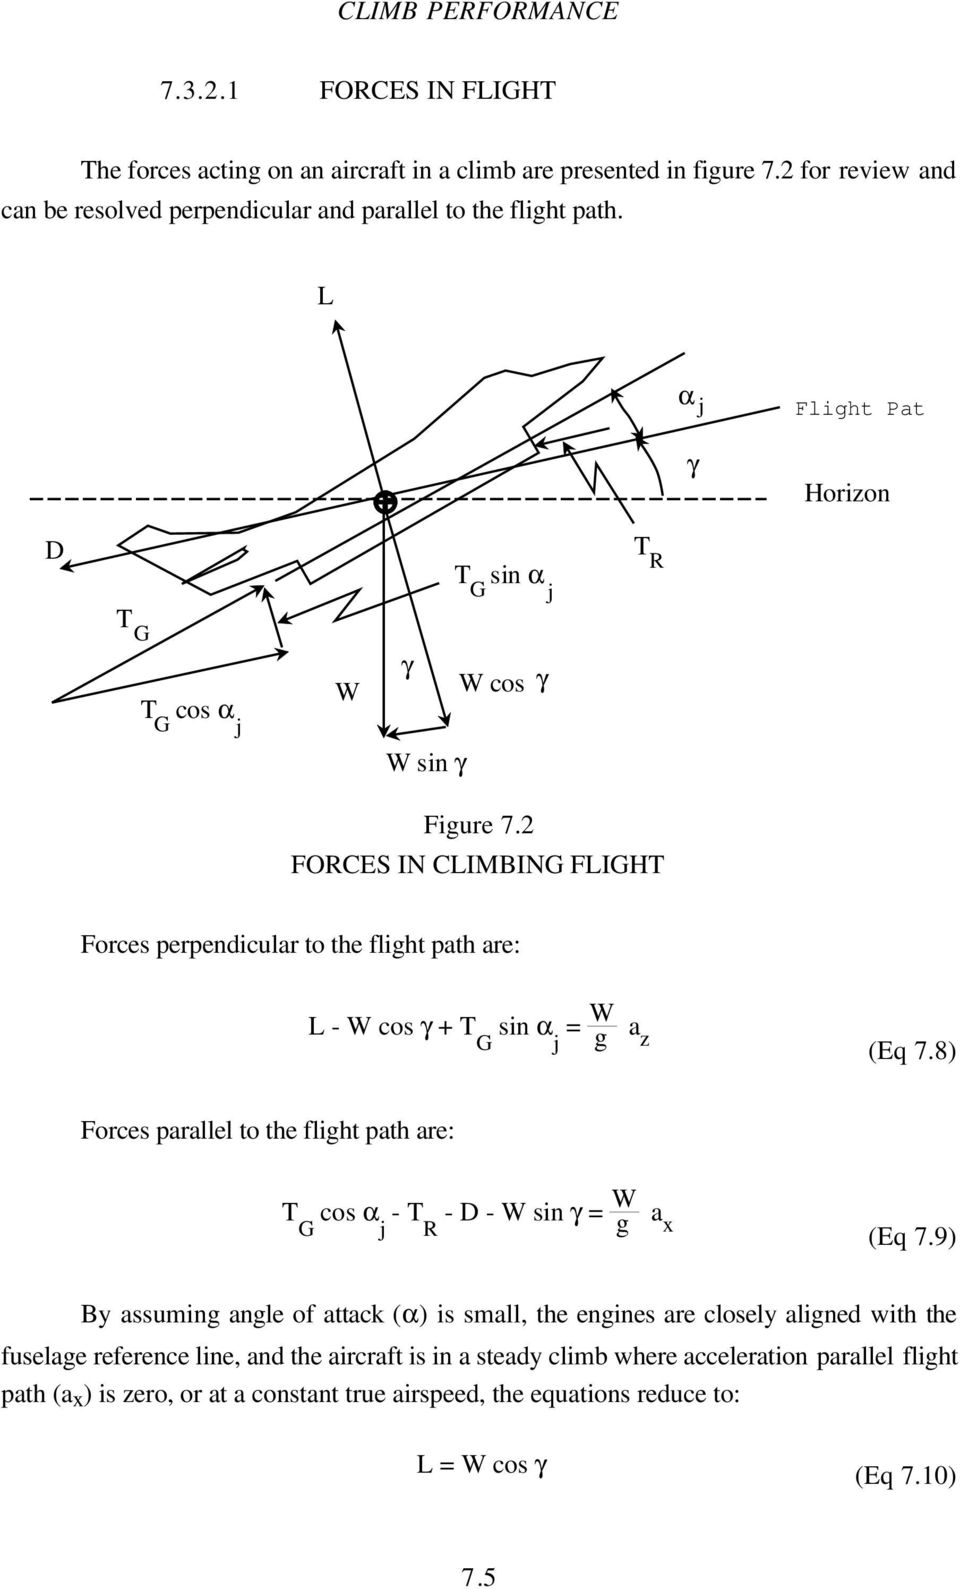 2 FORCES IN CLIMBING FLIGHT Forces perpendicular to the flight path are: L - W cos γ + T G sin α j = W g a z (Eq 7.